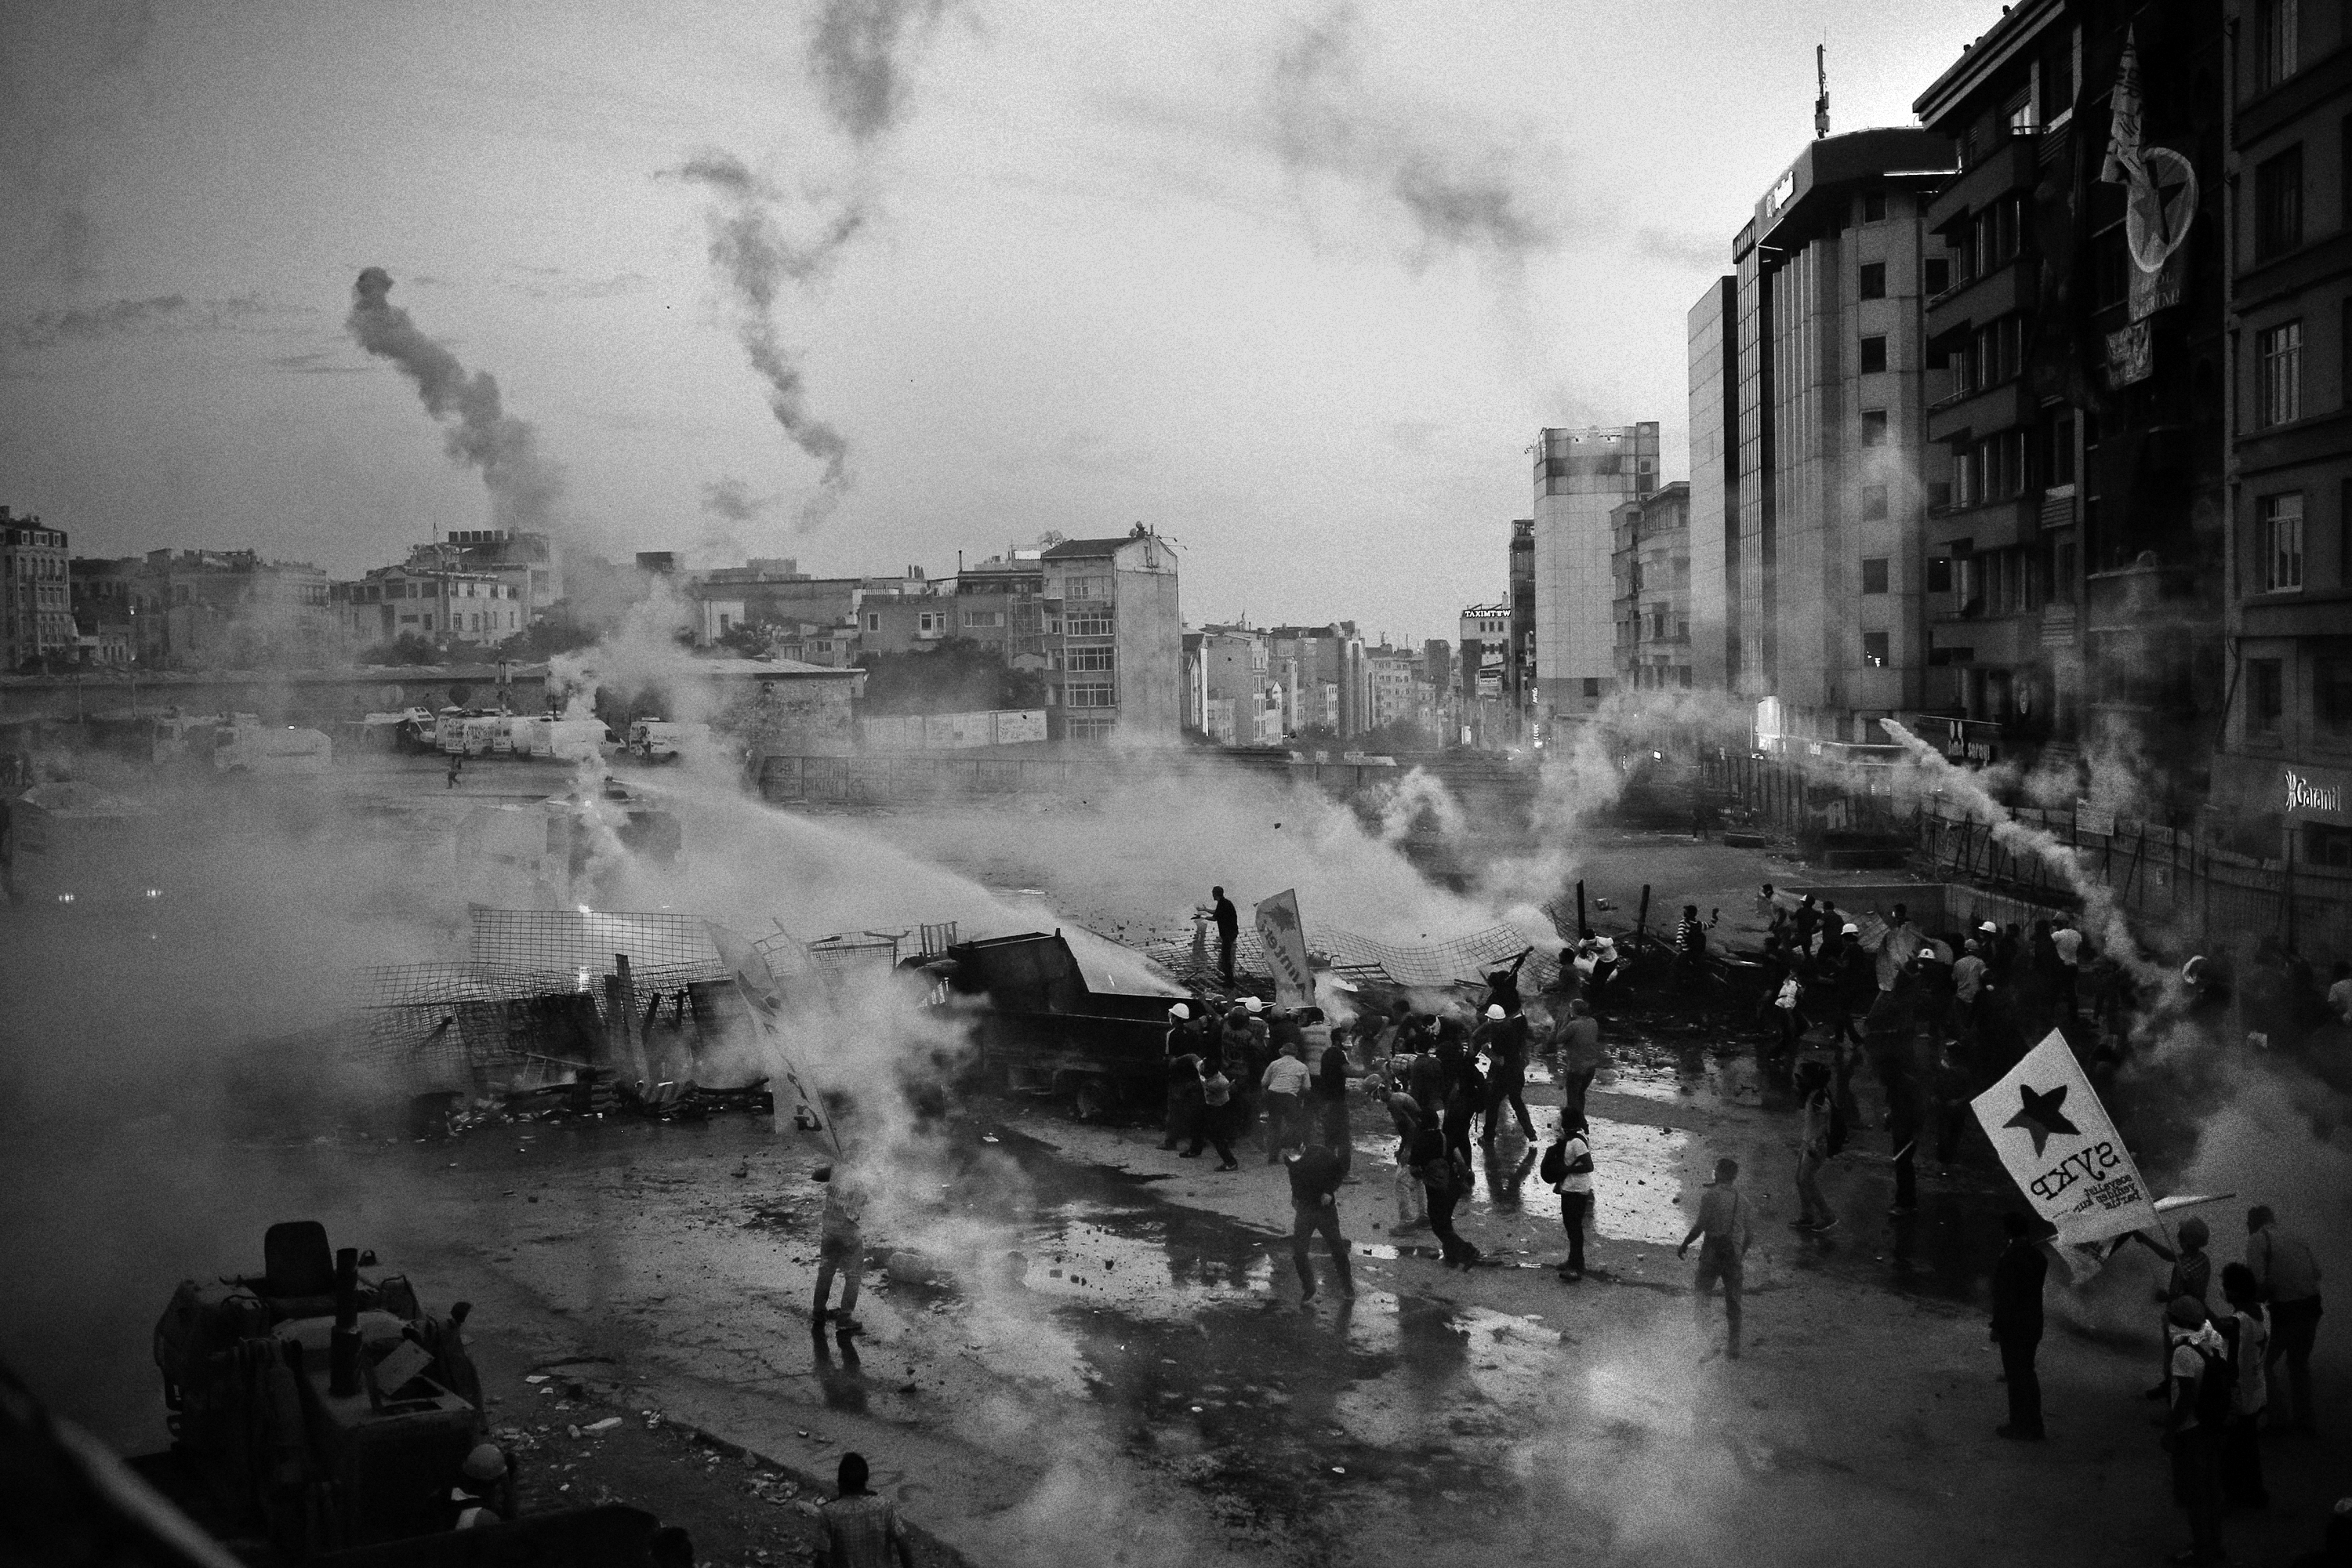 Riot police uses tear gaz and water canon during the Gezi park protest in Taksim square- Istanbul, Turkey, 4.06.2013